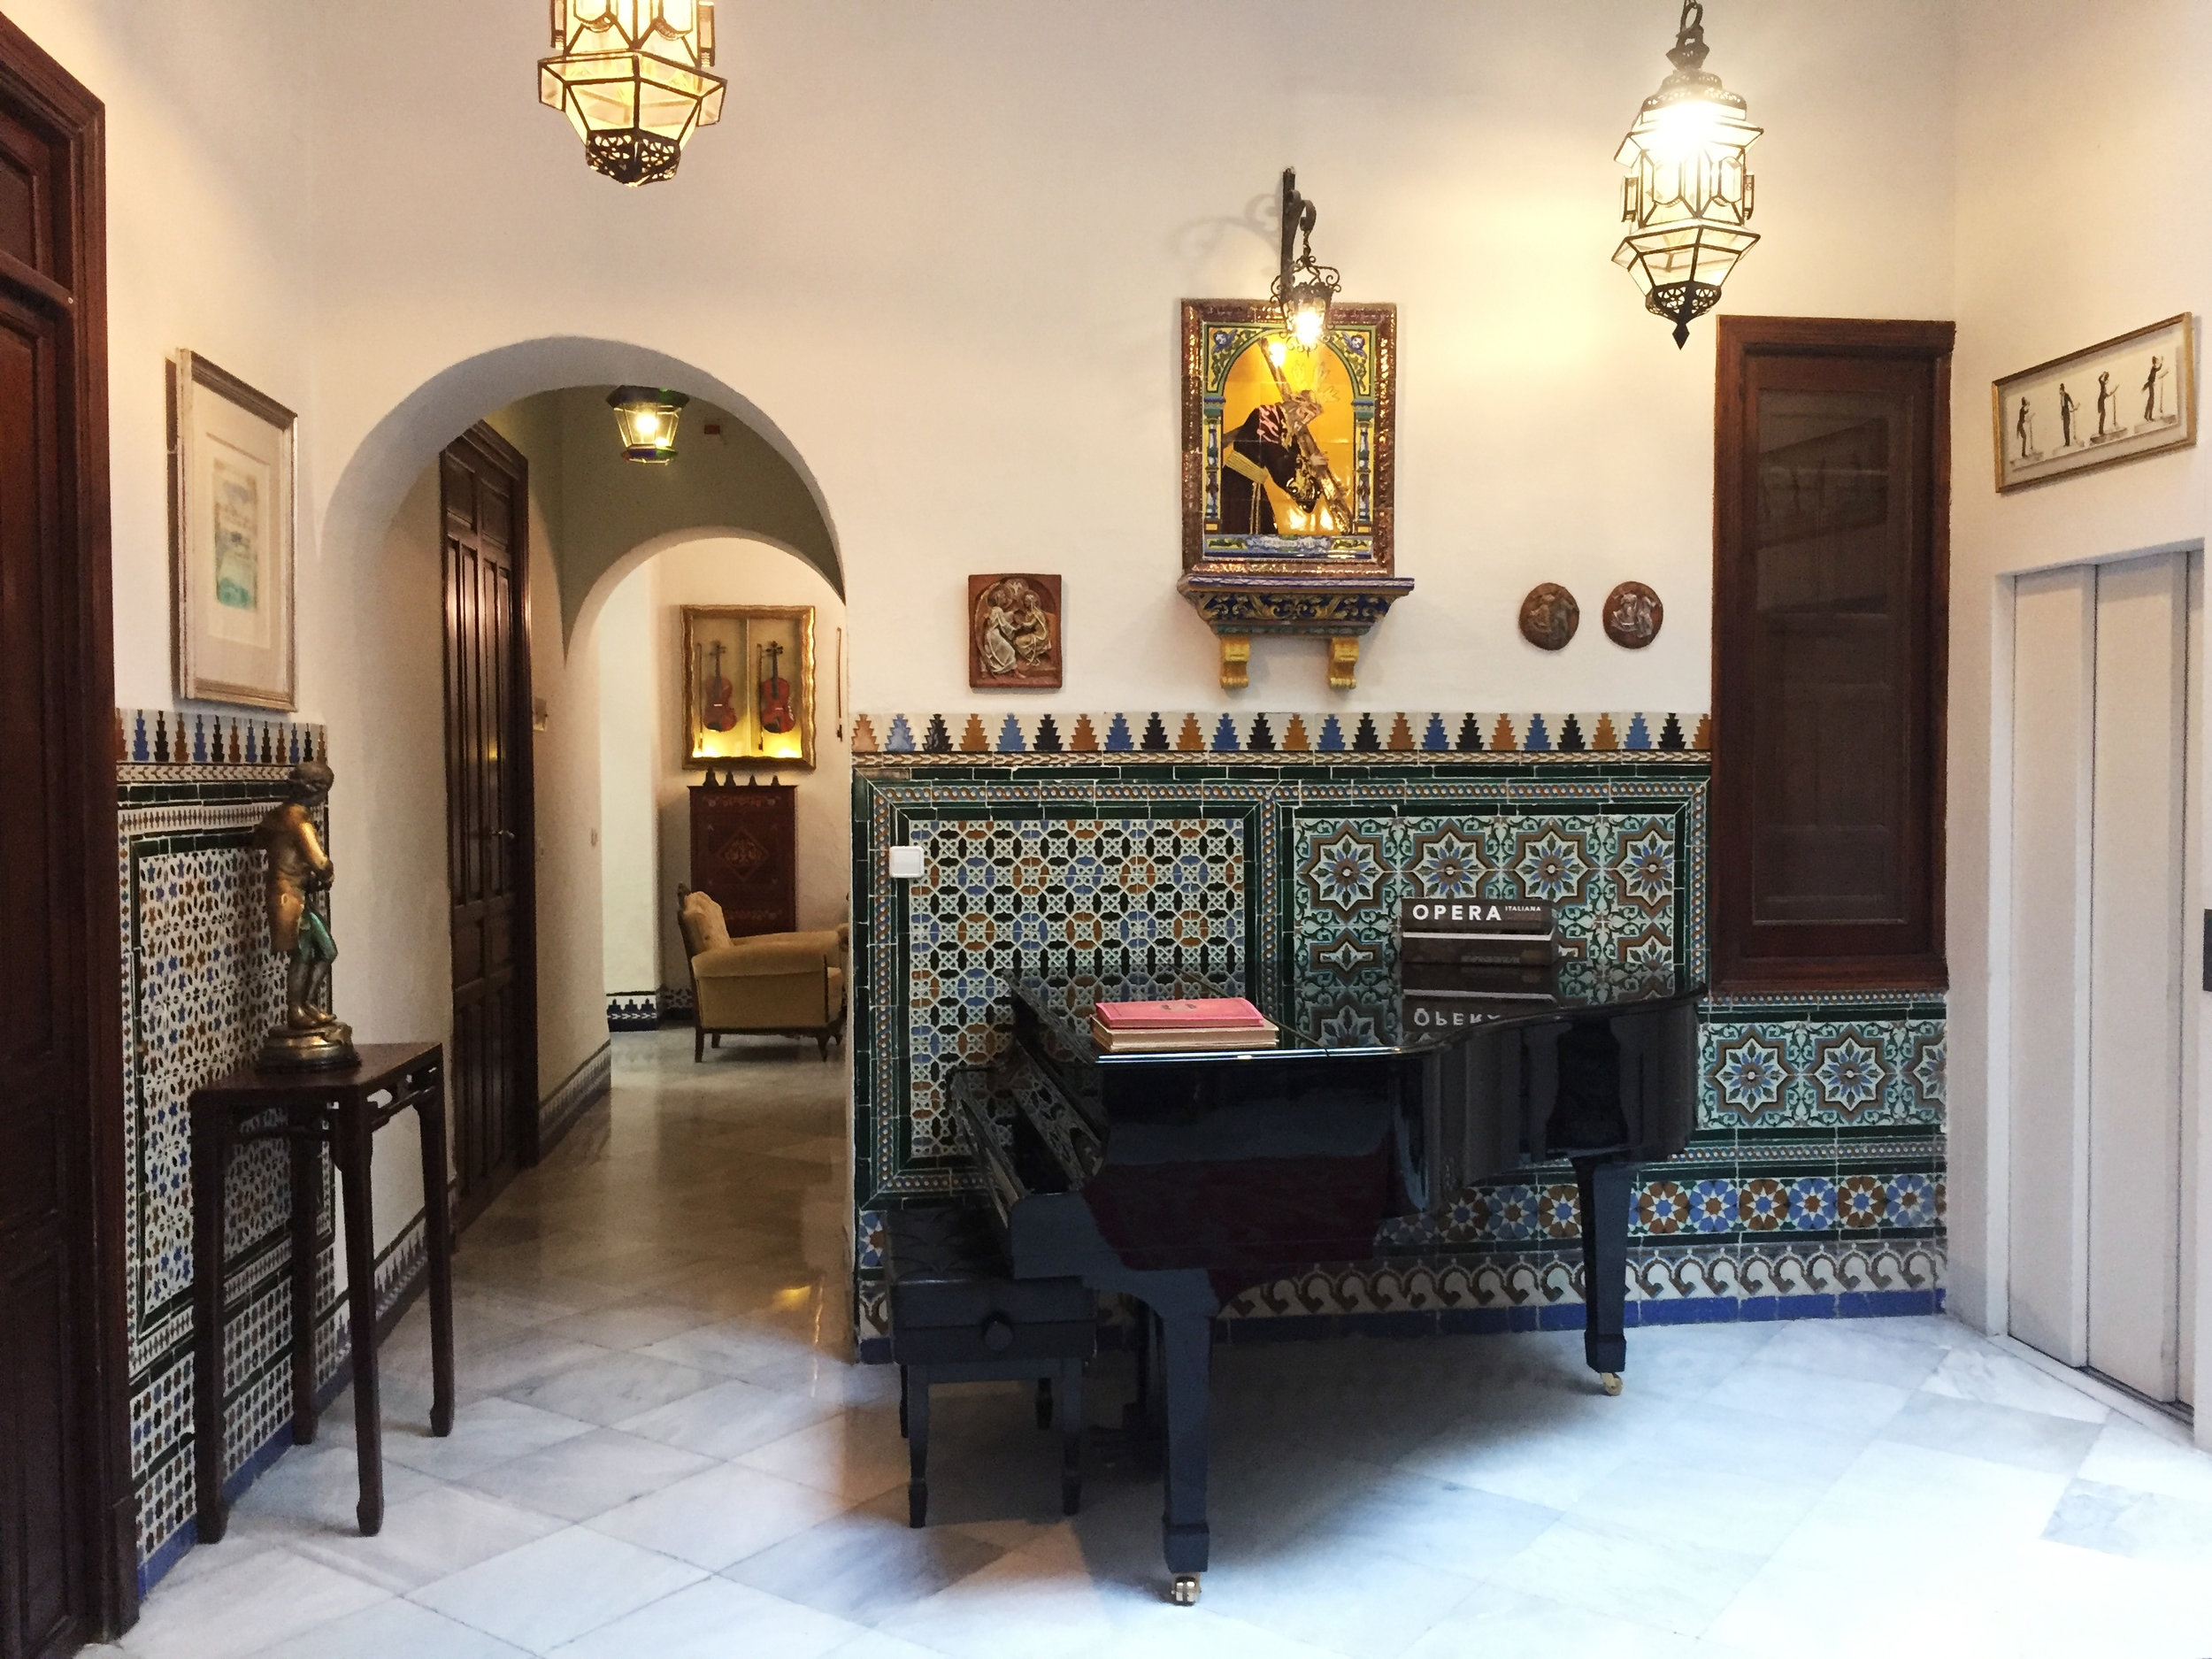 Our first stop -- Hotel Amadeus in Seville